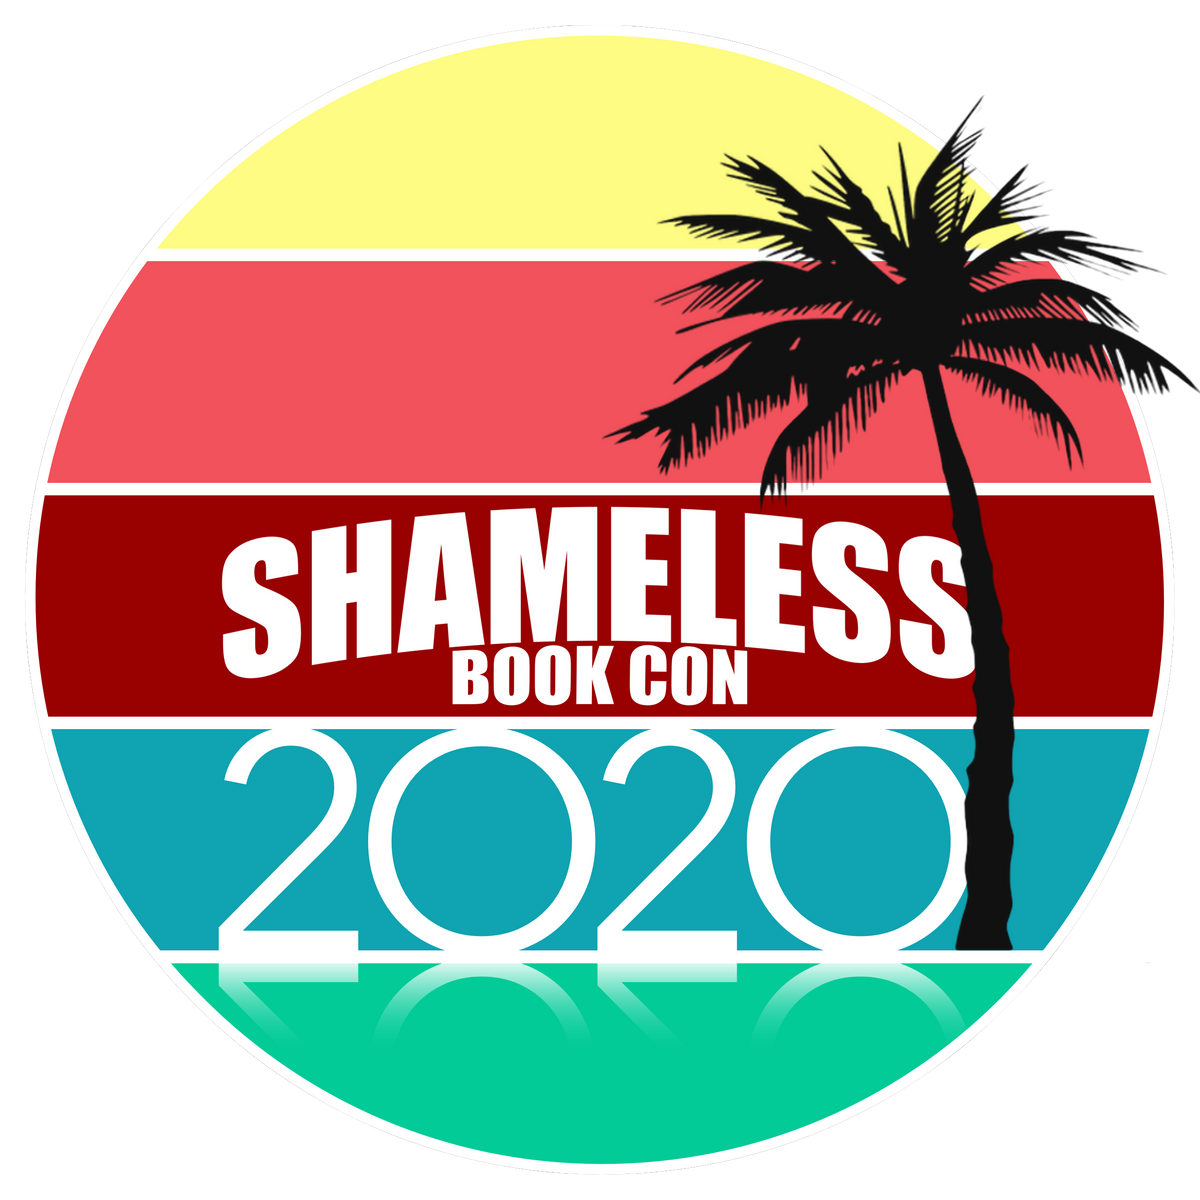 Romance Author Signing Events 2020.Shameless Book Con Shameless Book Con Orlando Author Signing